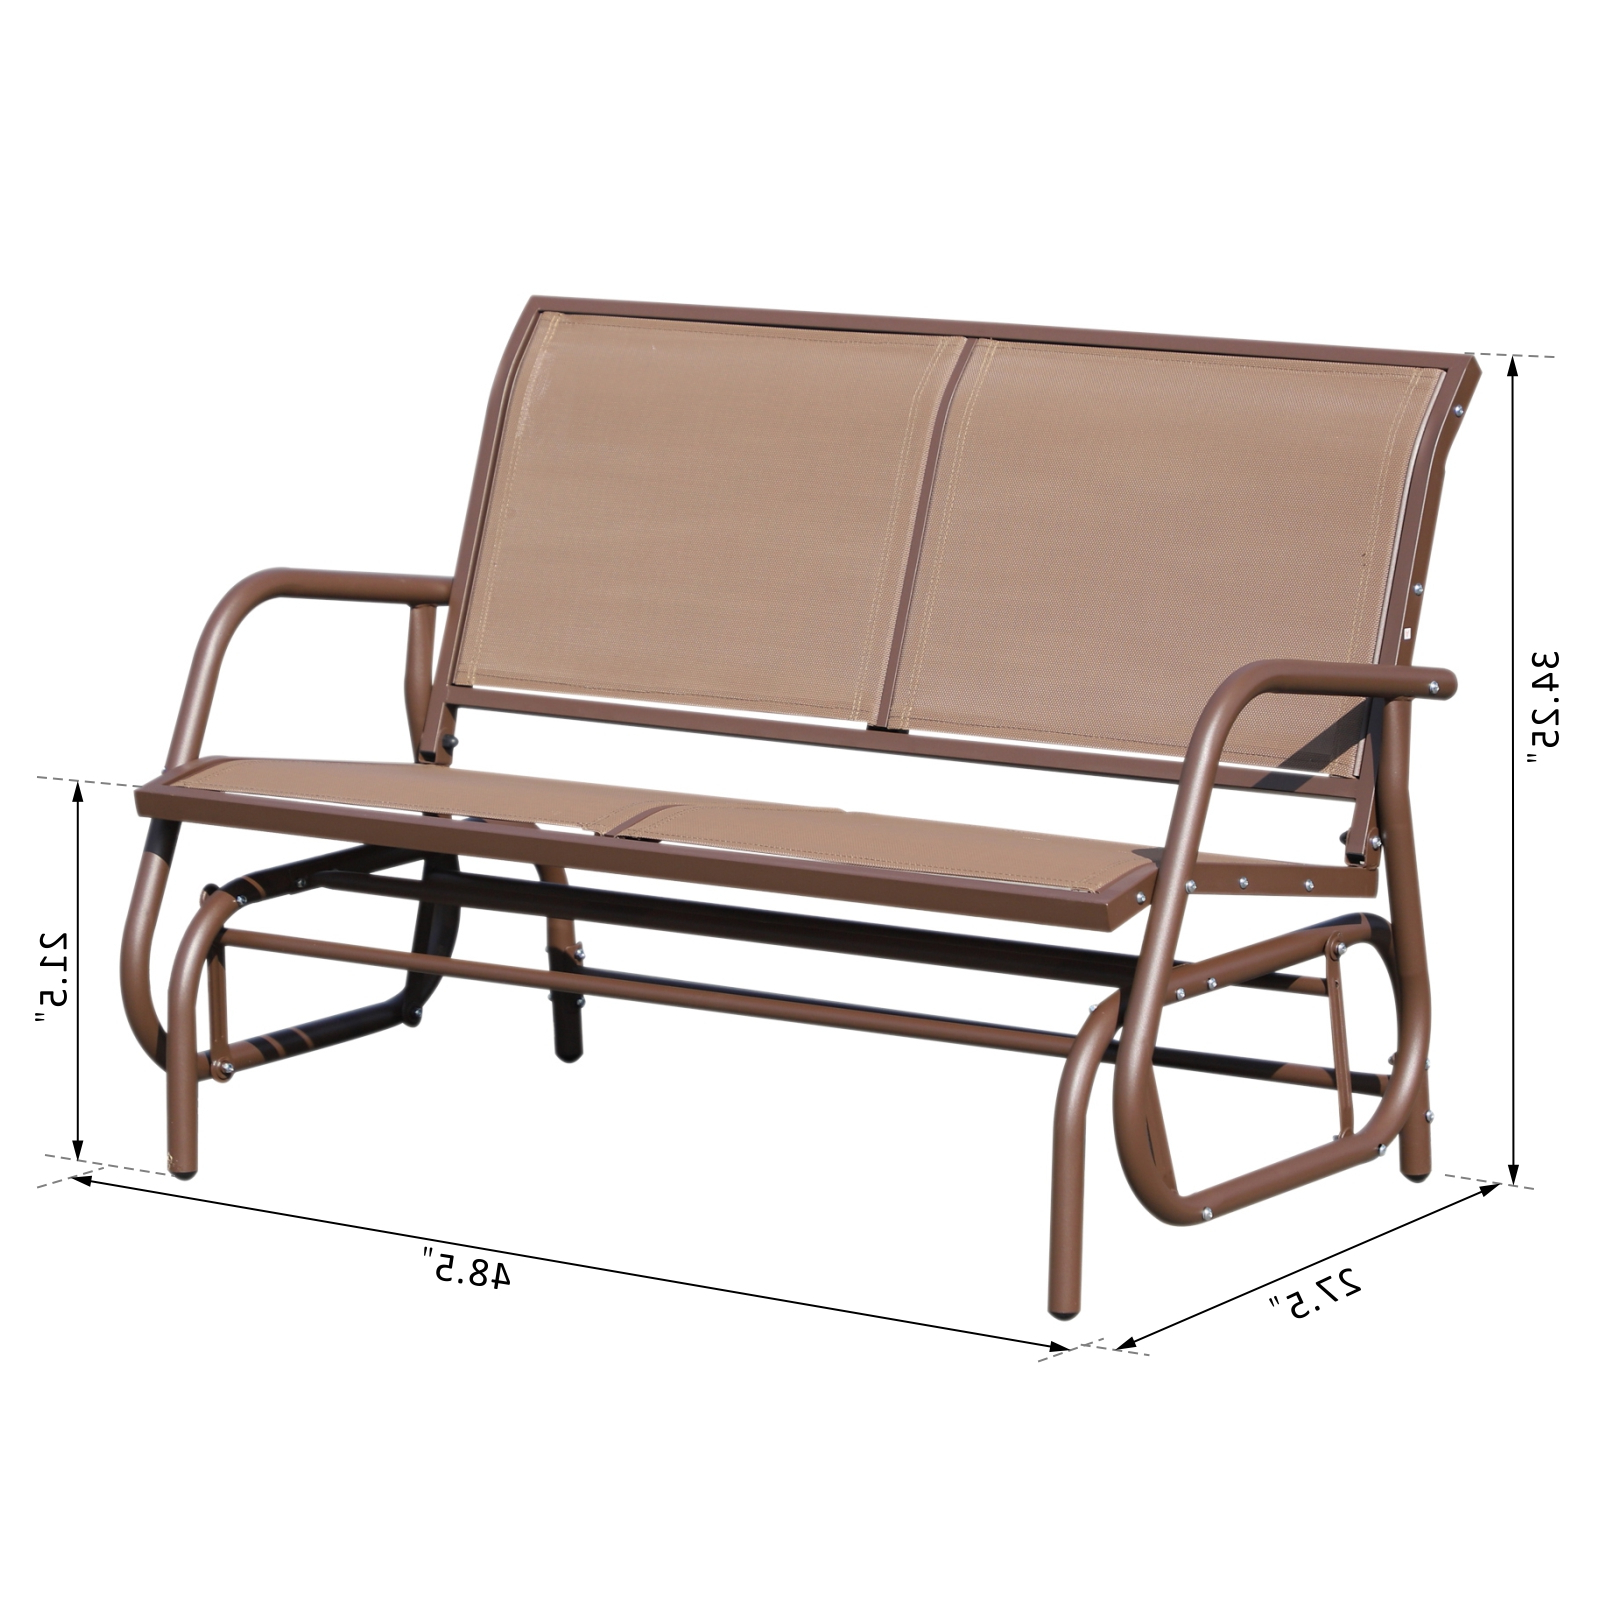 Trendy Sling Double Glider Benches Regarding Outsunny Patio Double Glider Outdoor Steel Sling Fabric Bench Swing Chair R Heavy Duty Porch Rocker Garden Loveseat Brown (View 25 of 30)